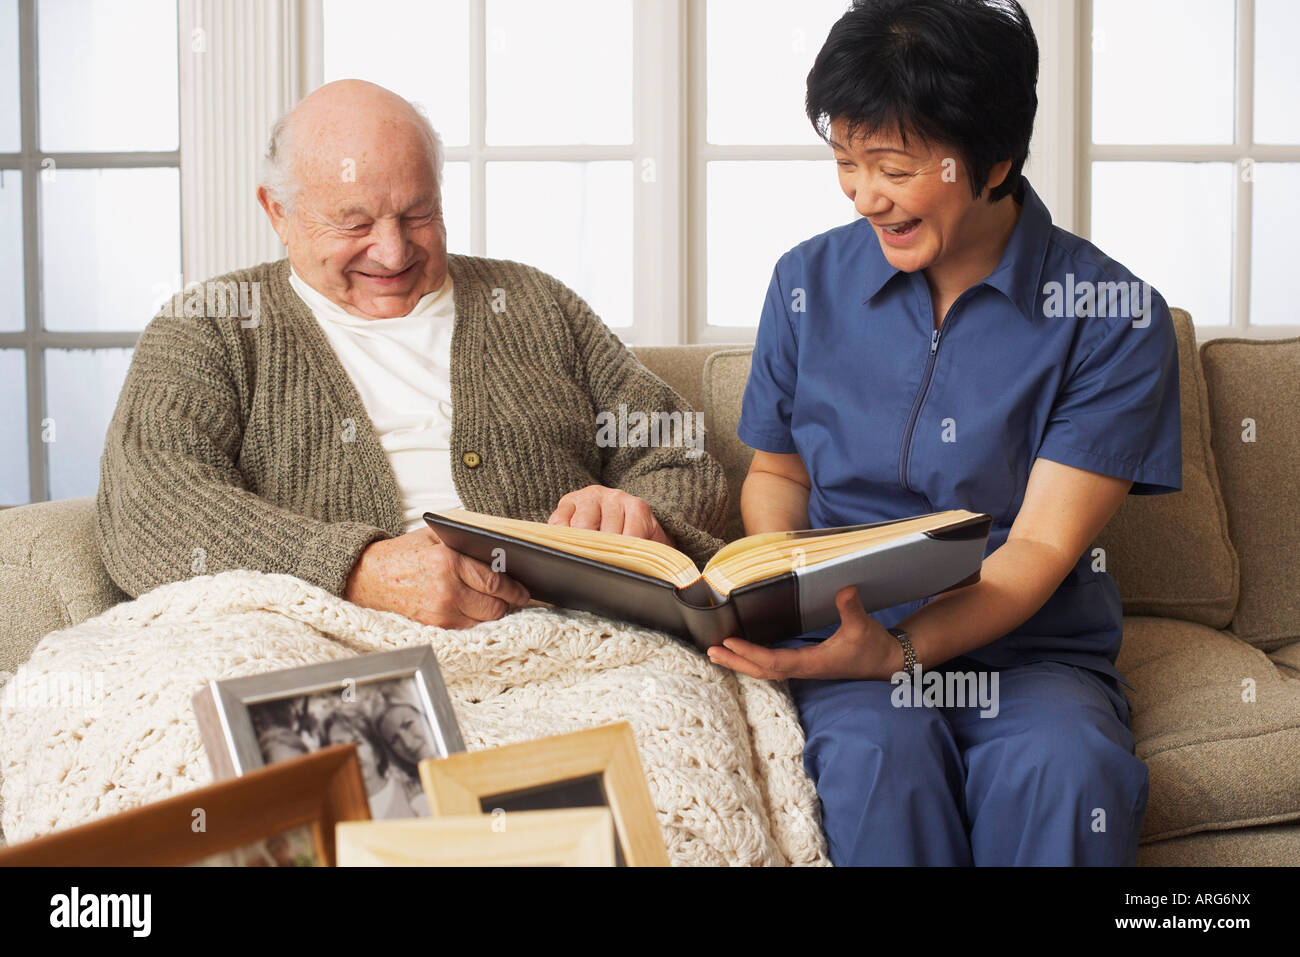 Senior Man with Woman Looking at Pictures Together Stock Photo